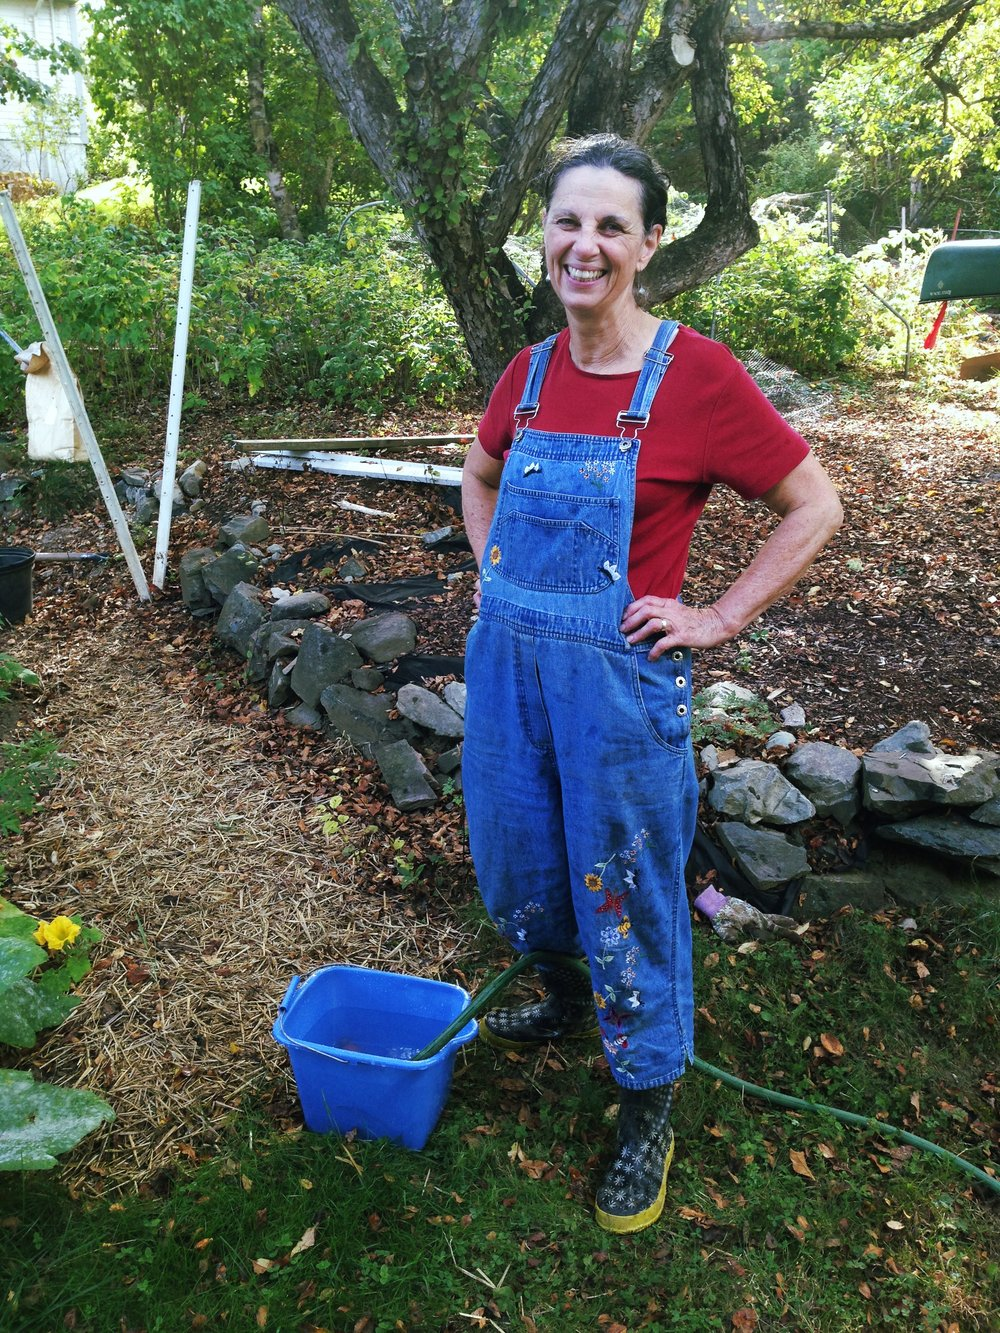 my Mum working in the garden - isn't she the cutest?